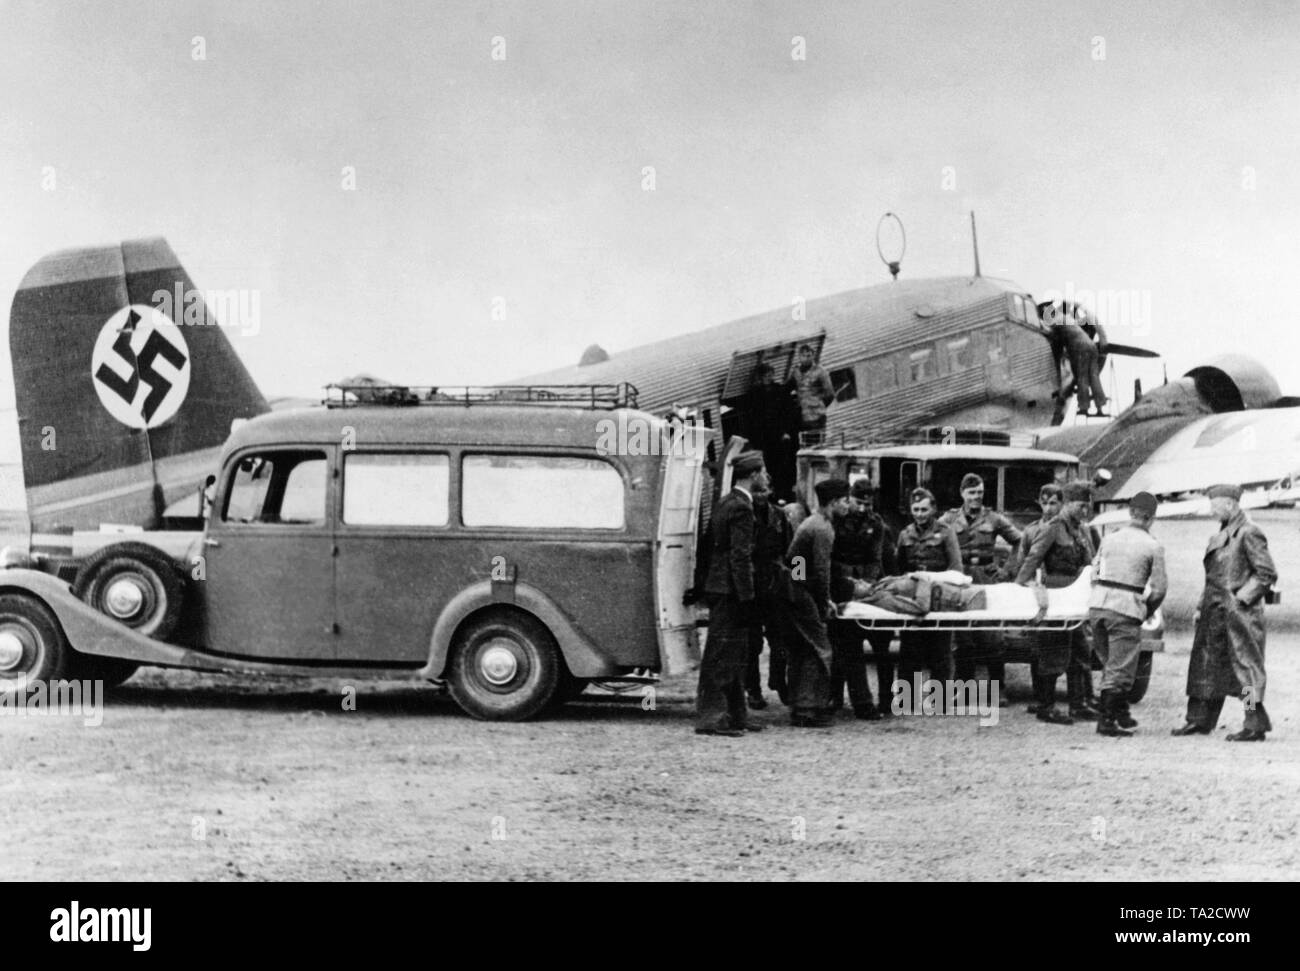 Photo of a wounded soldier of The Condor Legion, who is brought by comrades on a stretcher from an ambulance car to an air ambulance (Junkers Ju 72) of the German Lufthansa. A large swastika is displayed on the vertical tail. - Stock Image